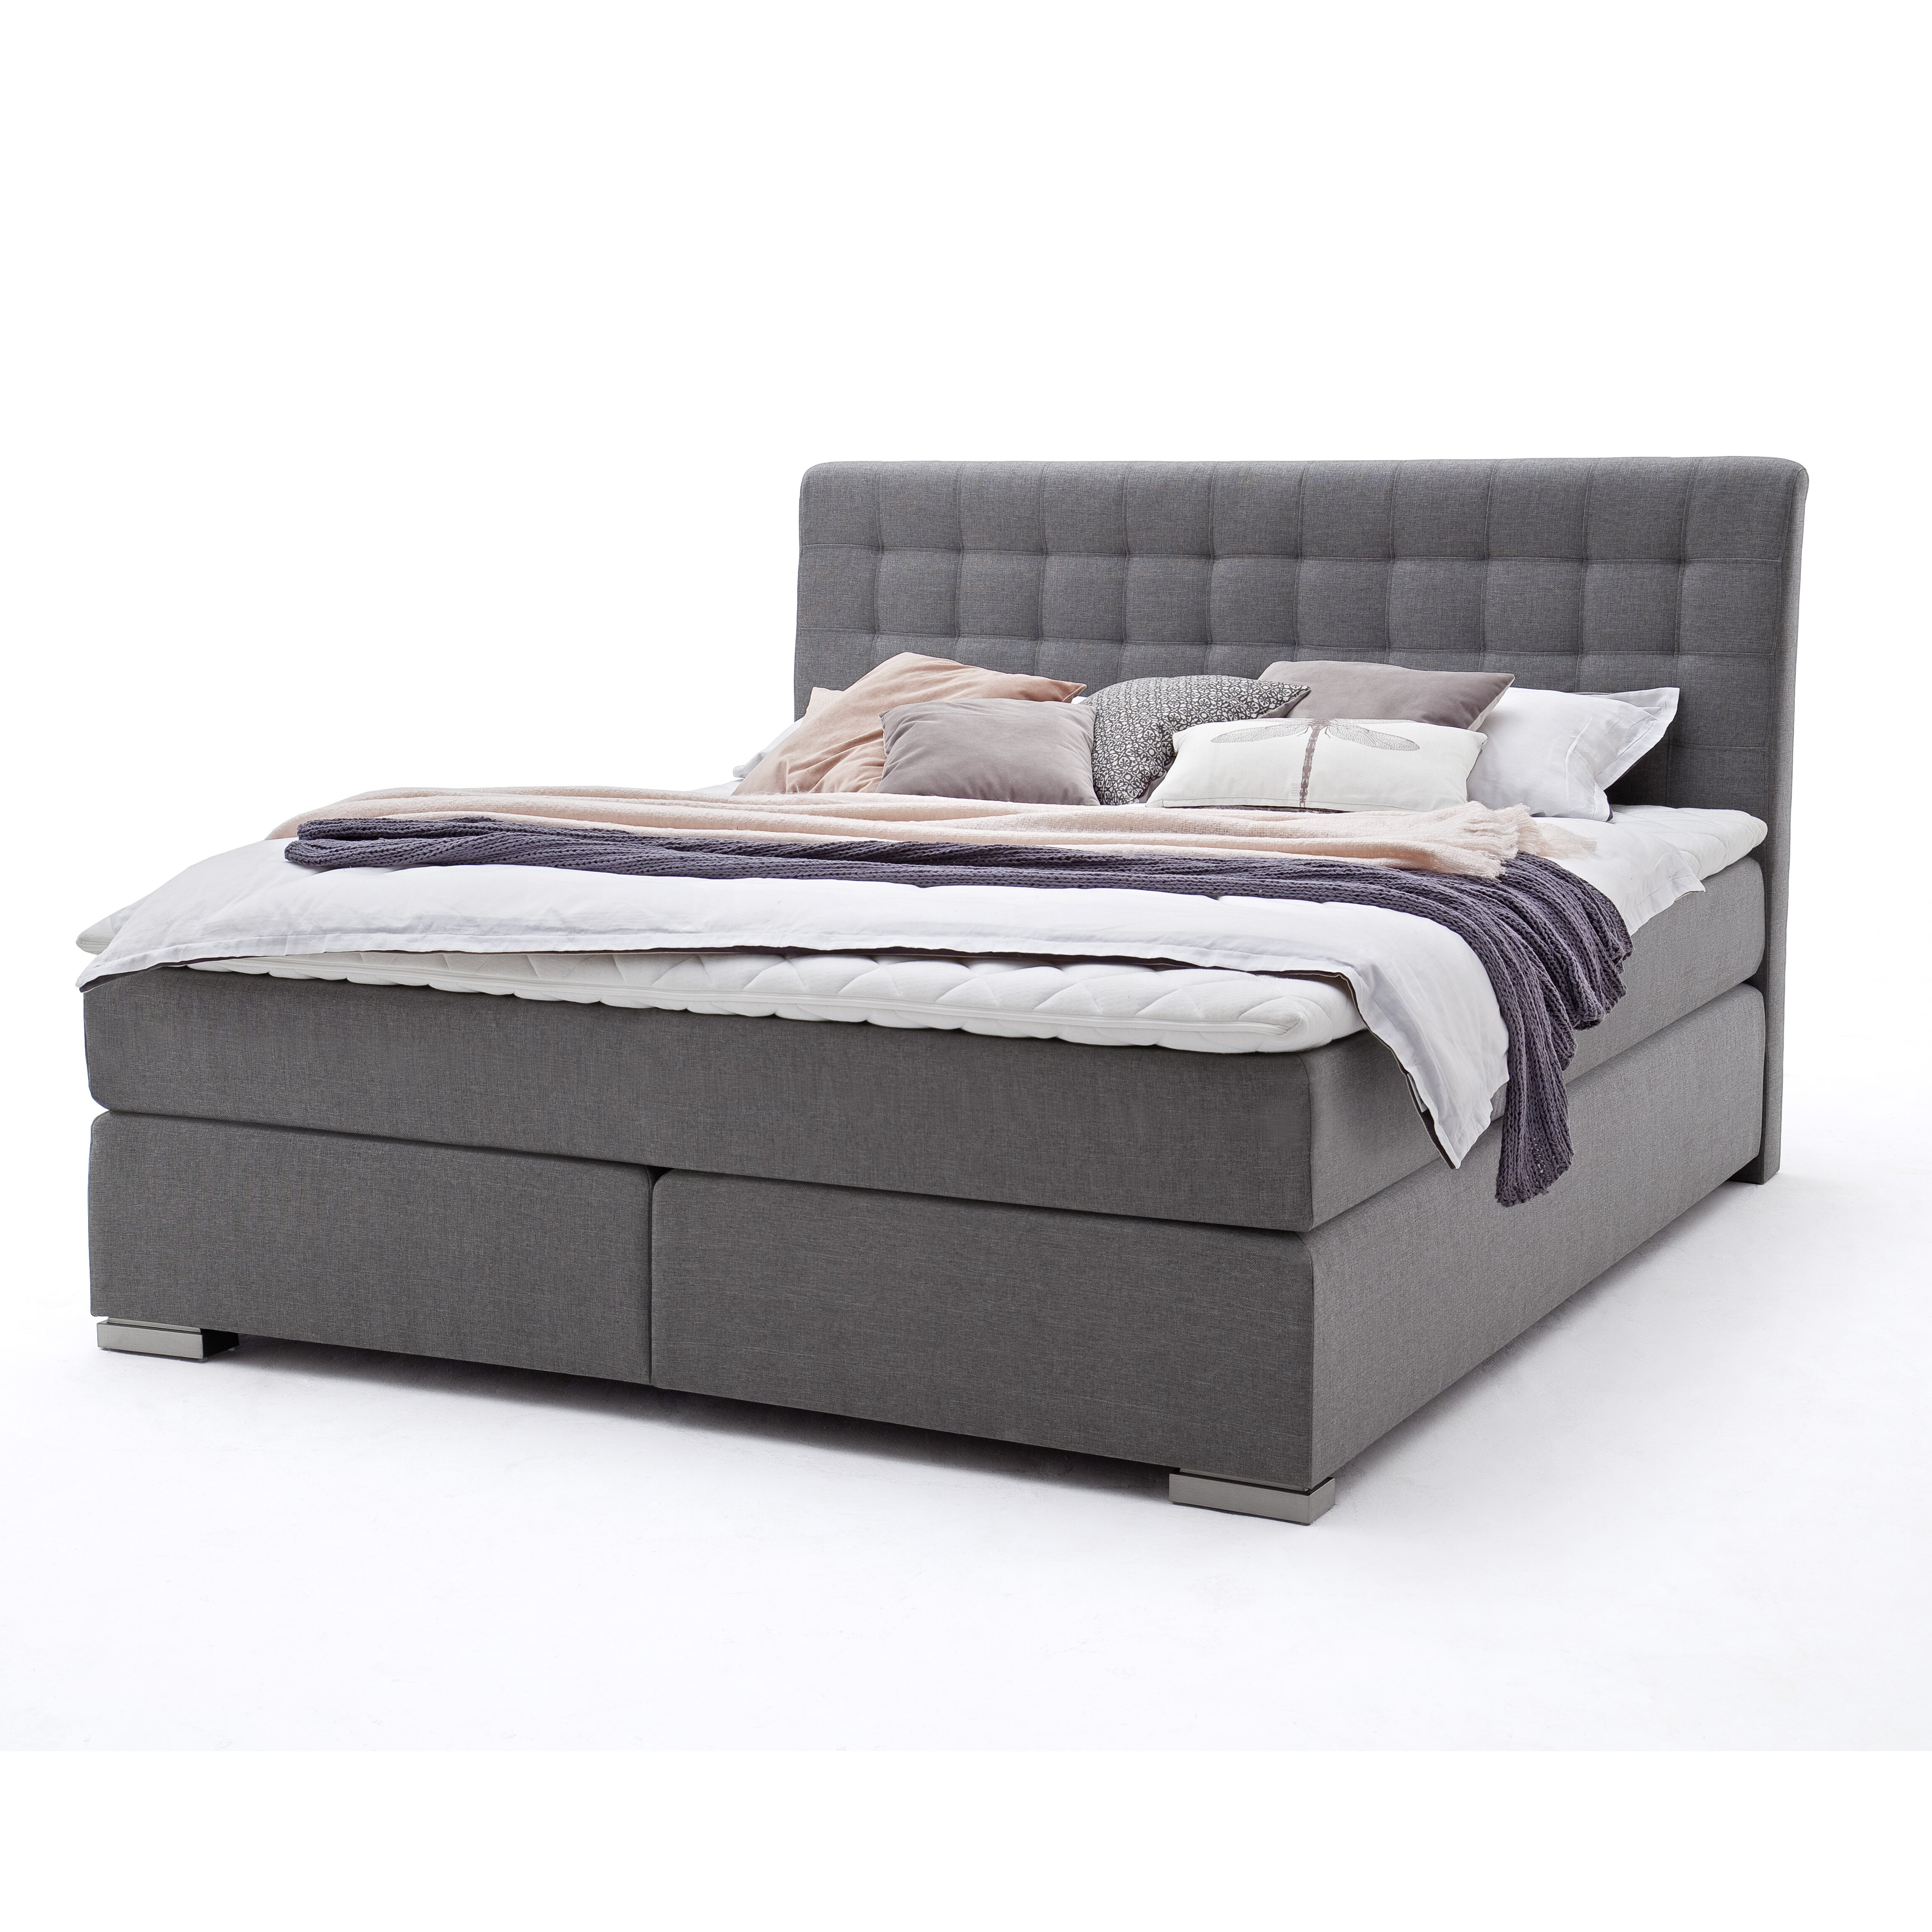 meise m bel boxspringbett lenno h rtegrad 2 3. Black Bedroom Furniture Sets. Home Design Ideas